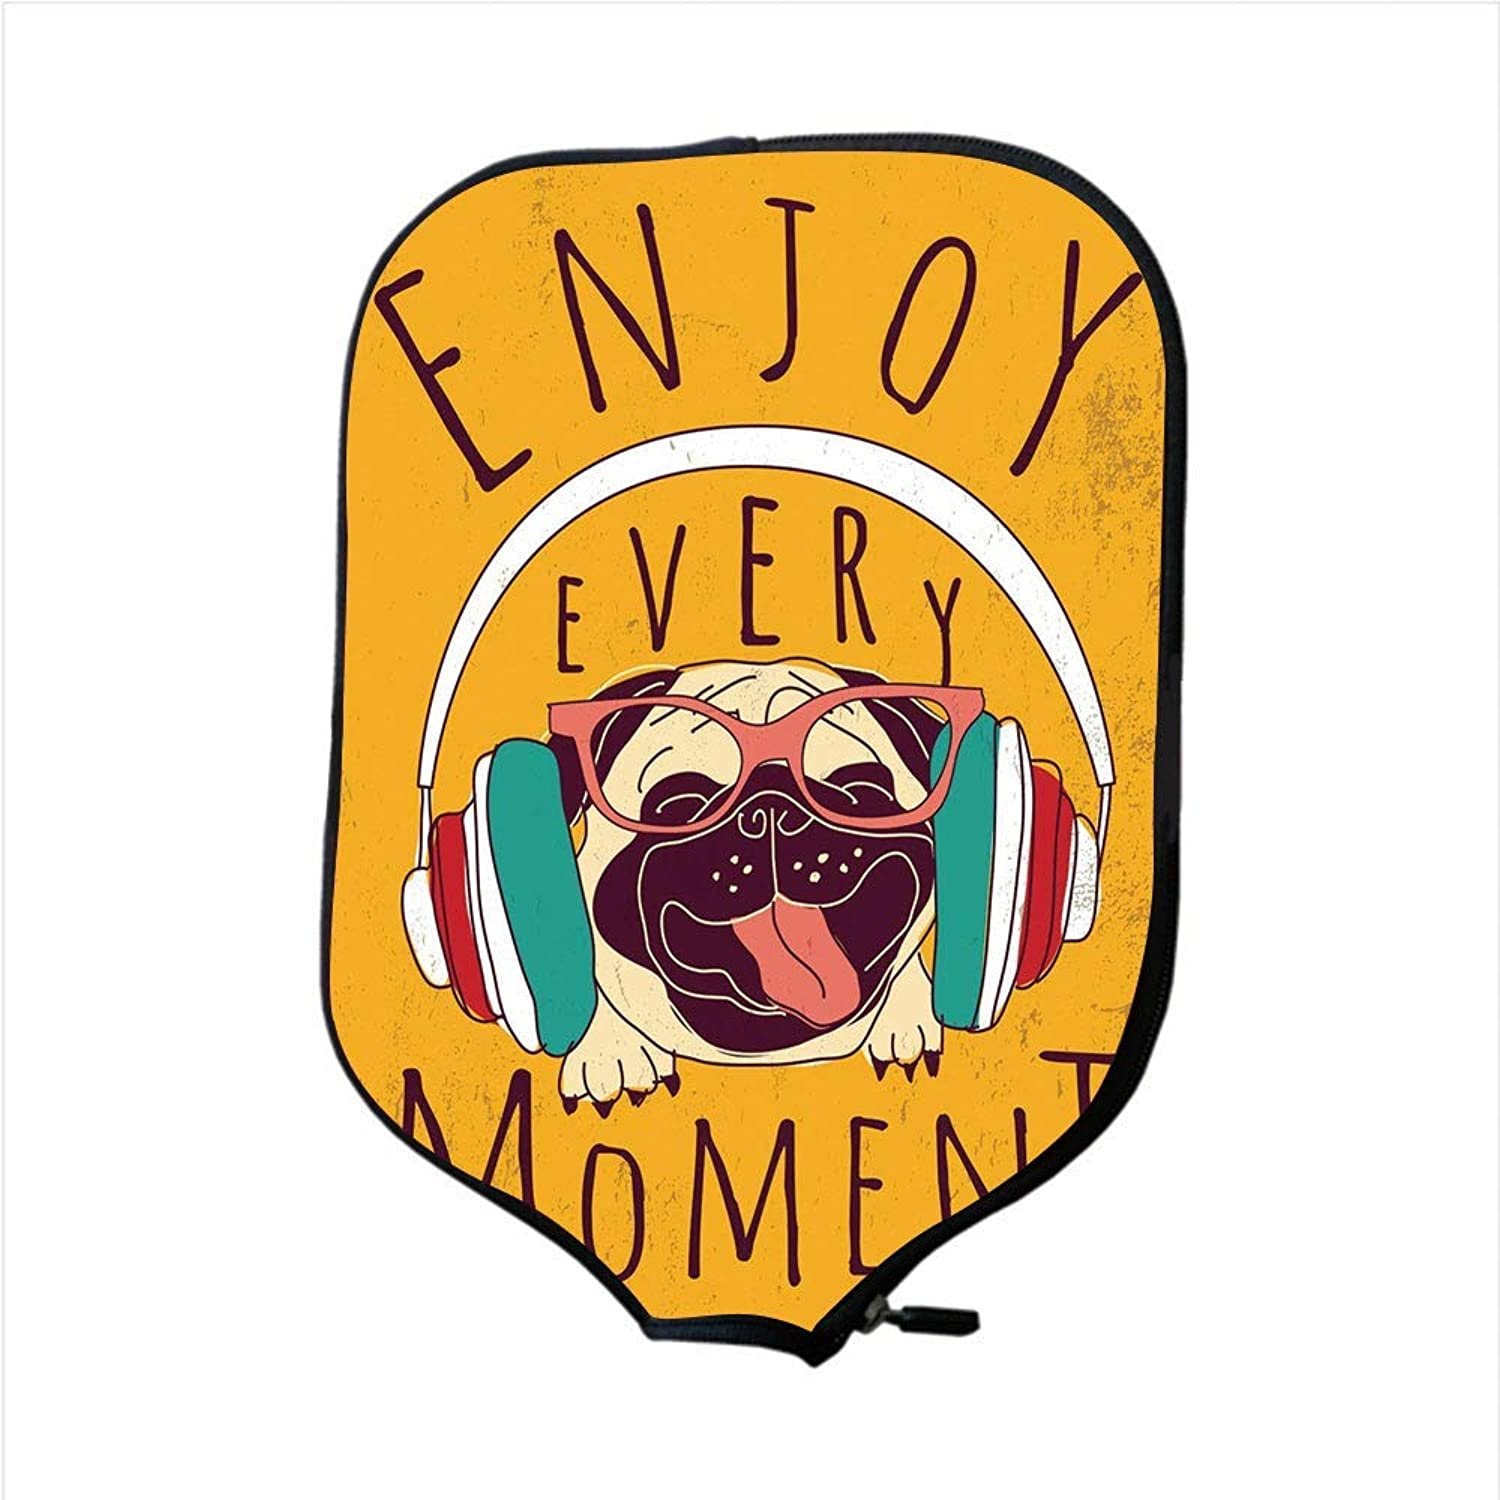 Fine Neoprene Pickleball Paddle Racket Cover Case,Pug,Happy Dog Listening Music Enjoy Every Moment Quote Funny Image Pet Animal Fun,Marigold Multicolor,Fit for Most Rackets